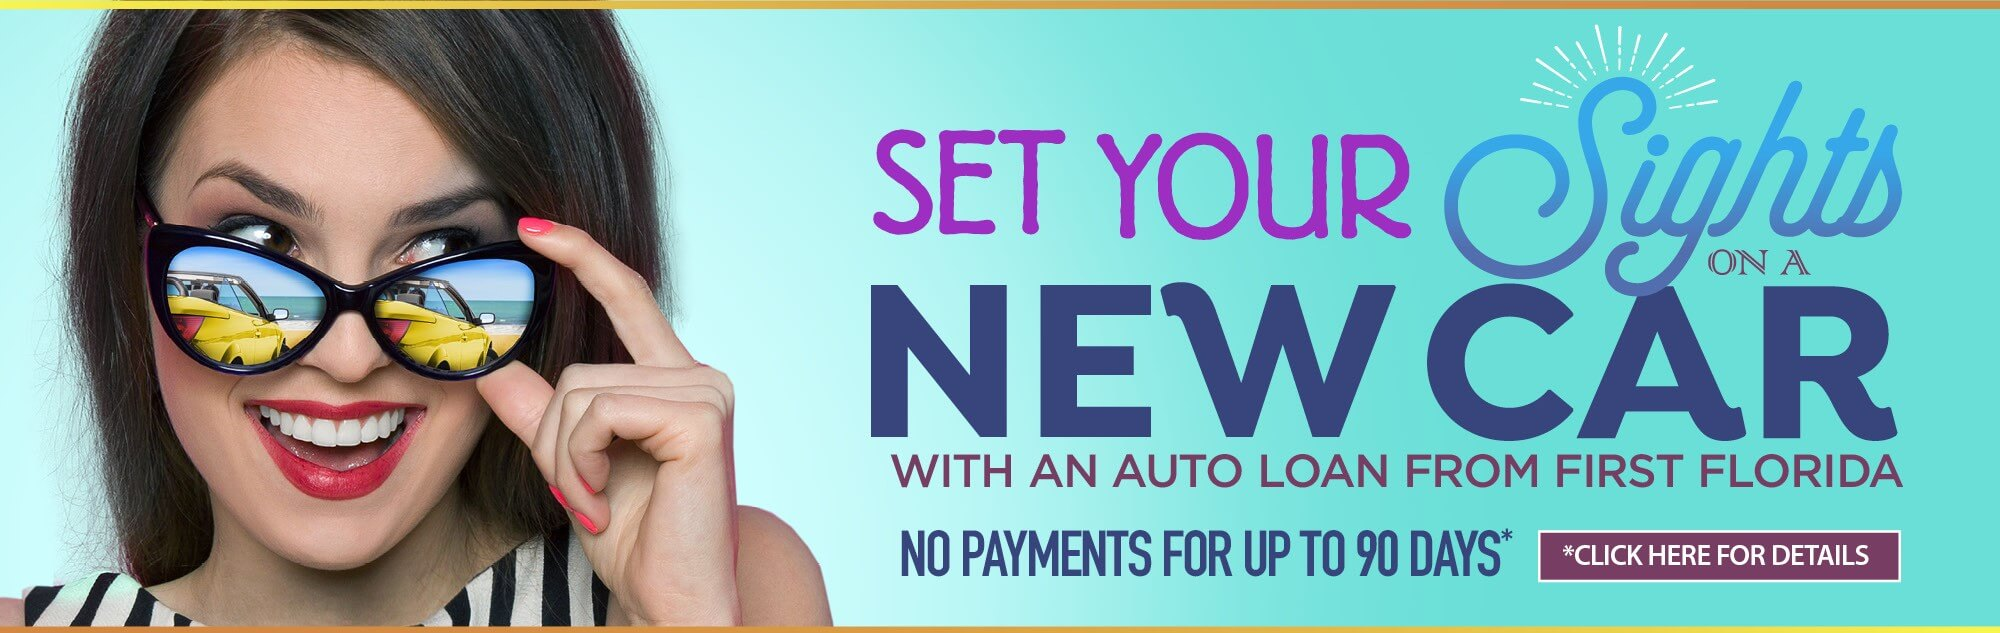 Set your sights on a new car with an auto loan from First Florida. Feel confident with an auto loan featuring no payment for up to 90 days*. Click for details.